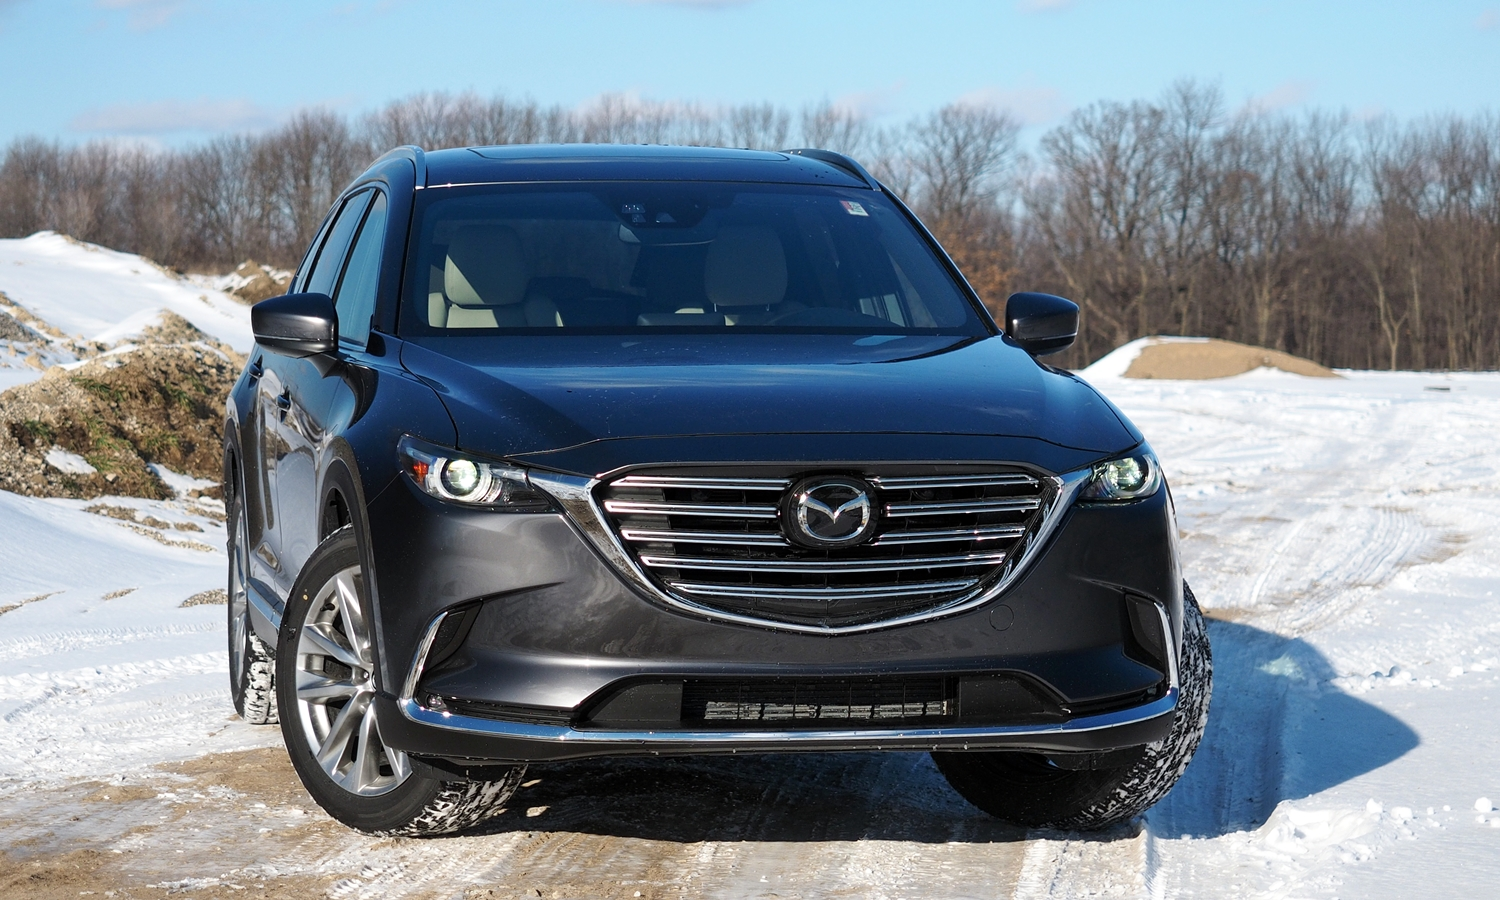 GMC Acadia Photos: 2016 Mazda CX-9 front view